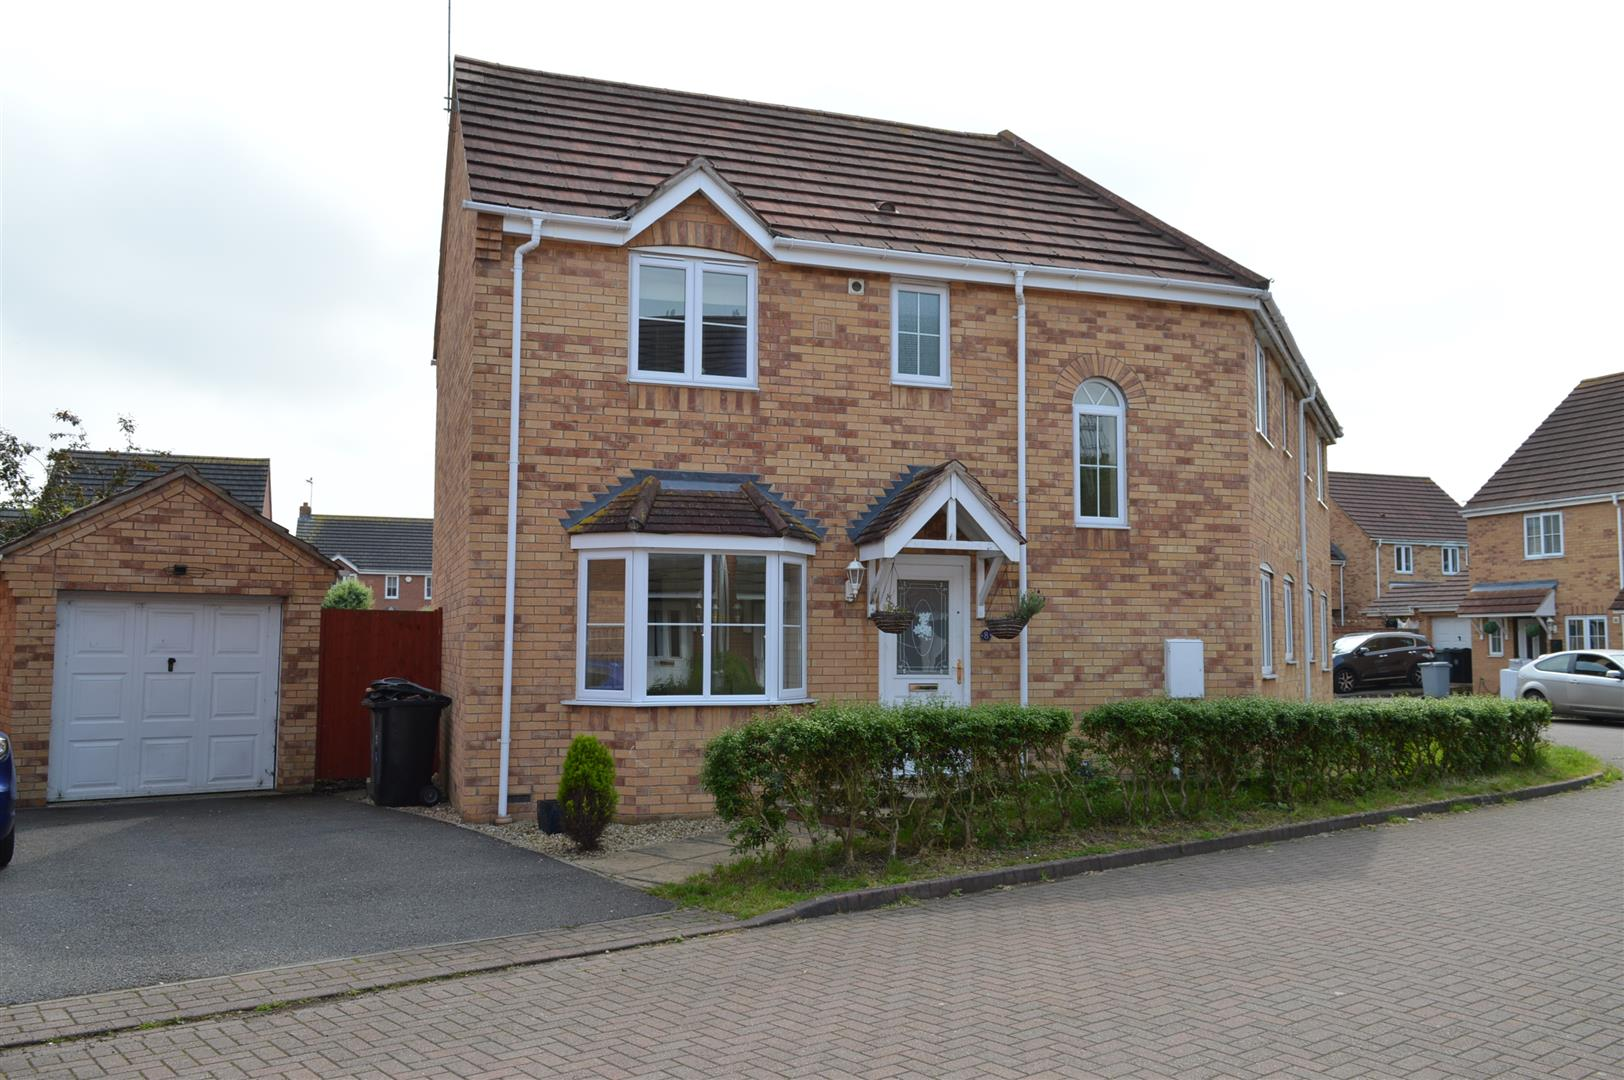 4 bedroom property in Grantham